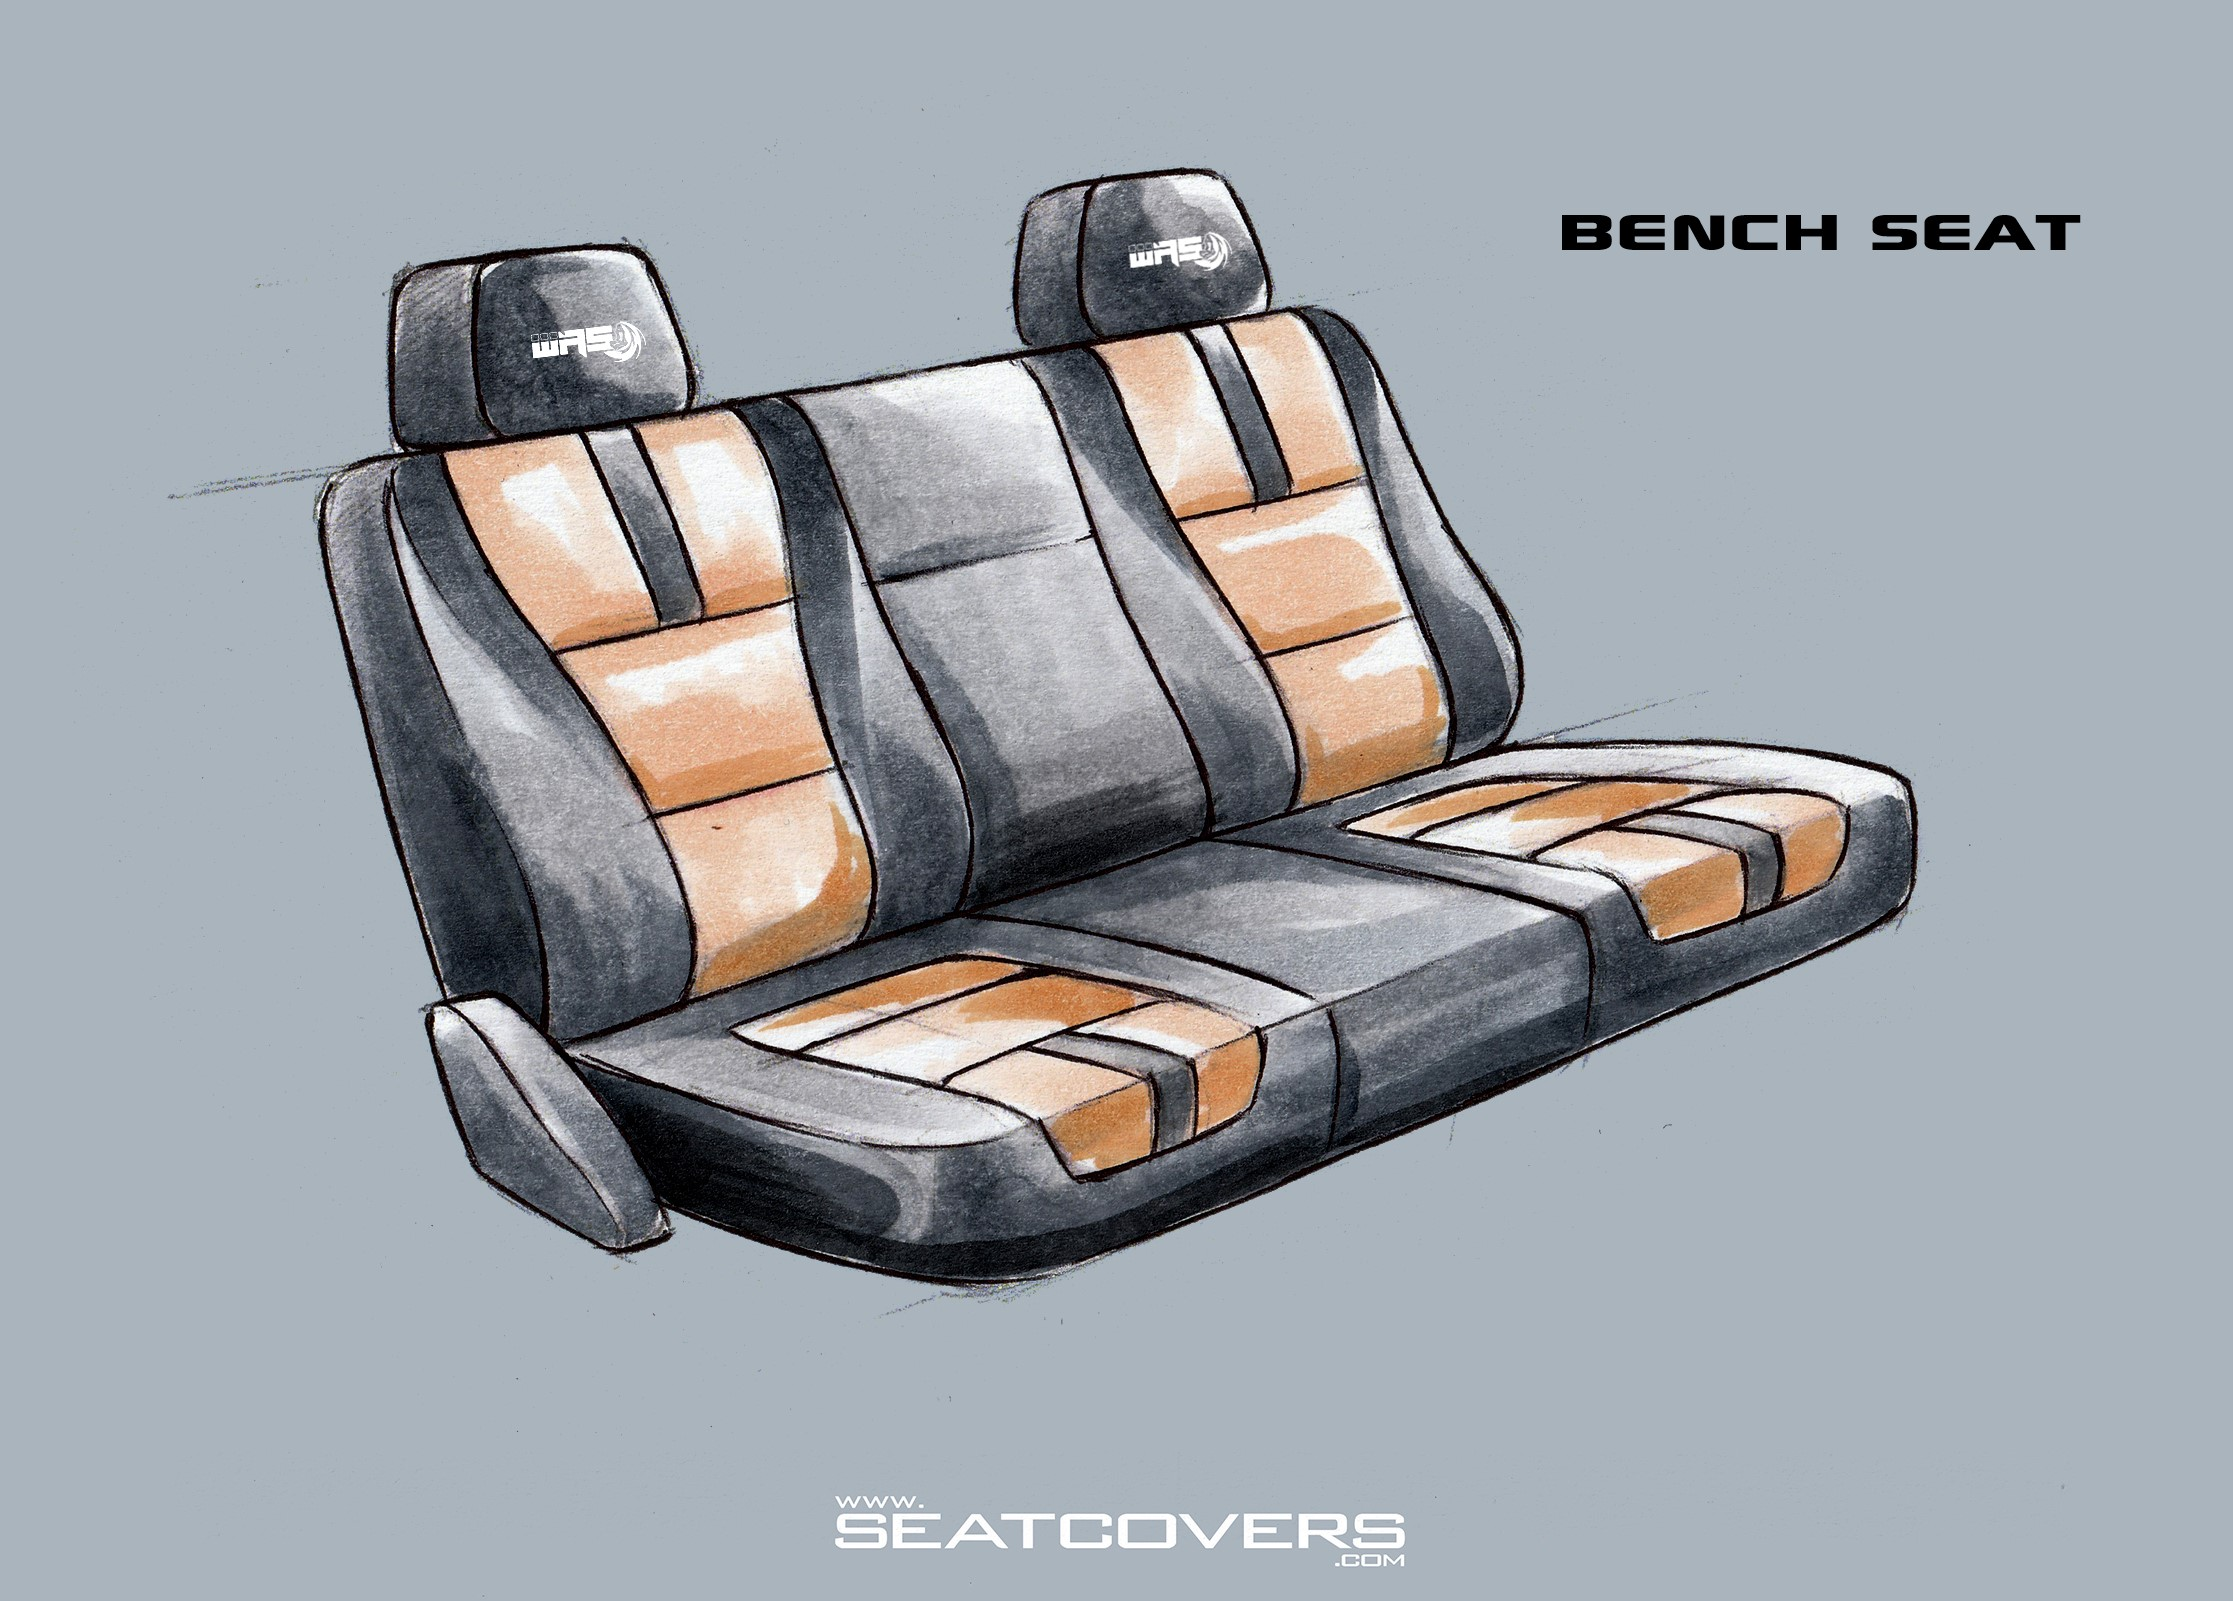 99-00, 03-10 Ford Super duty Front Seat covers super duty seat covers www.seatcovers.com